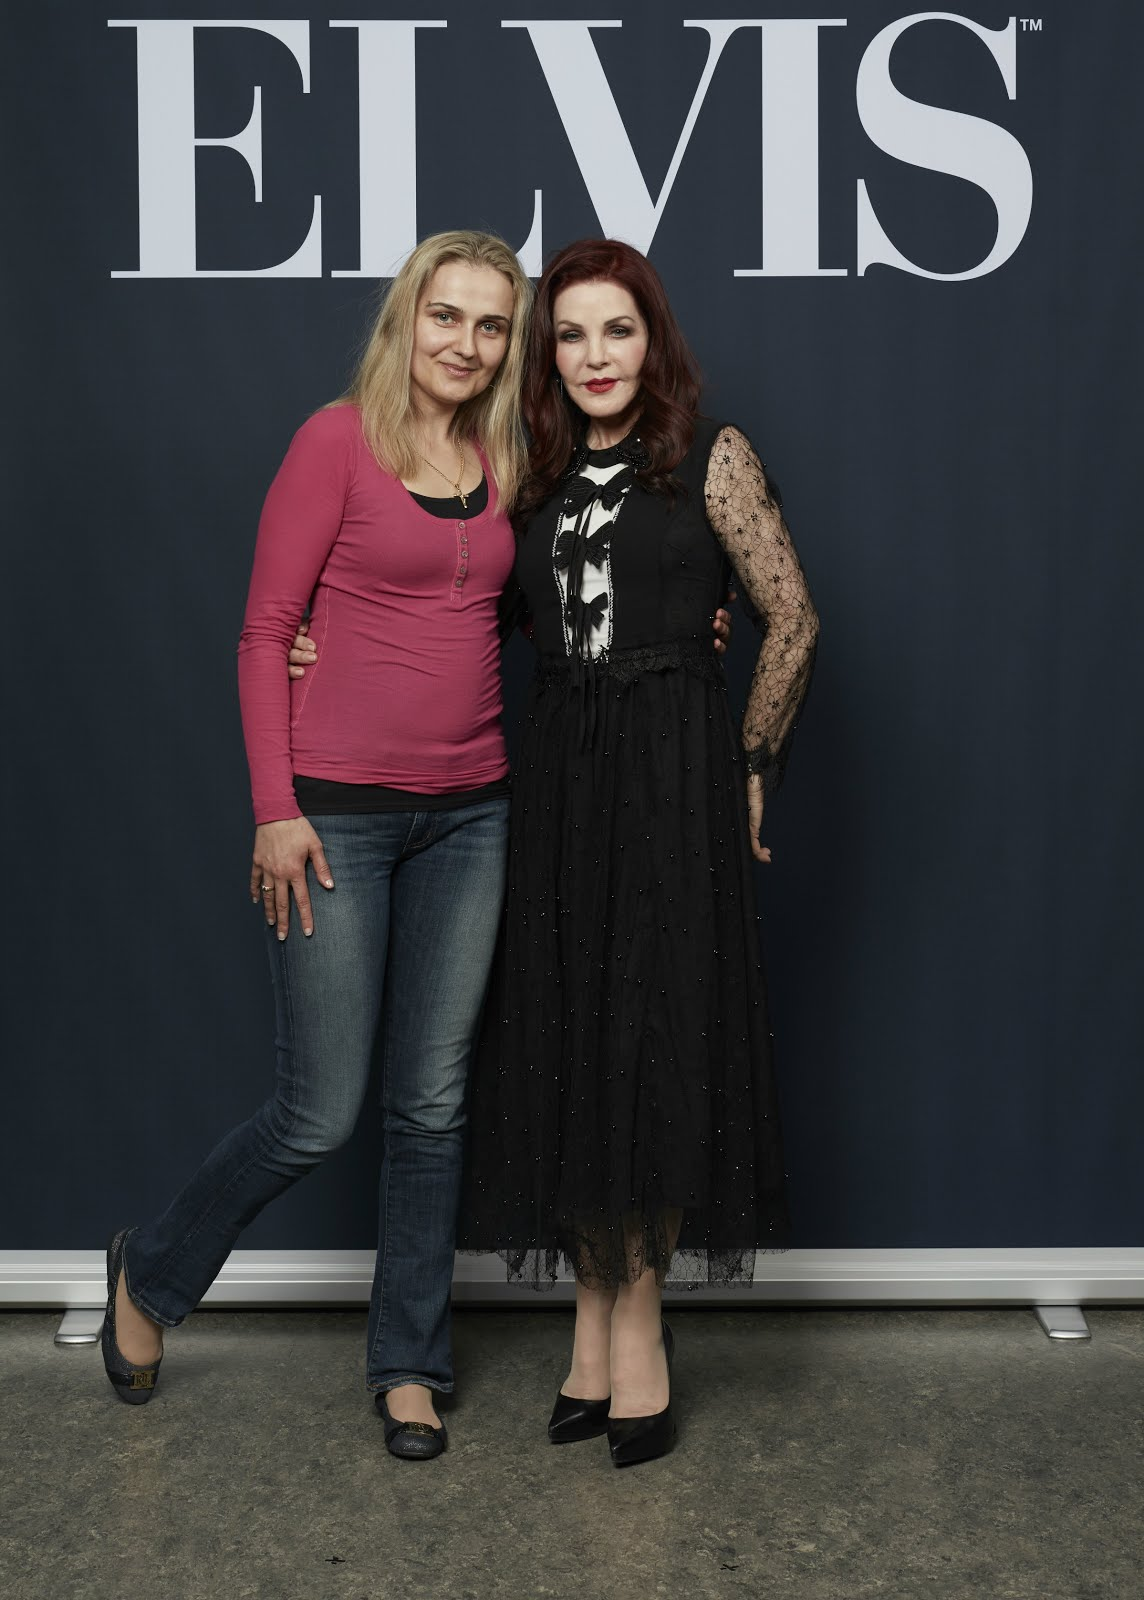 With PRISCILLA PRESLEY